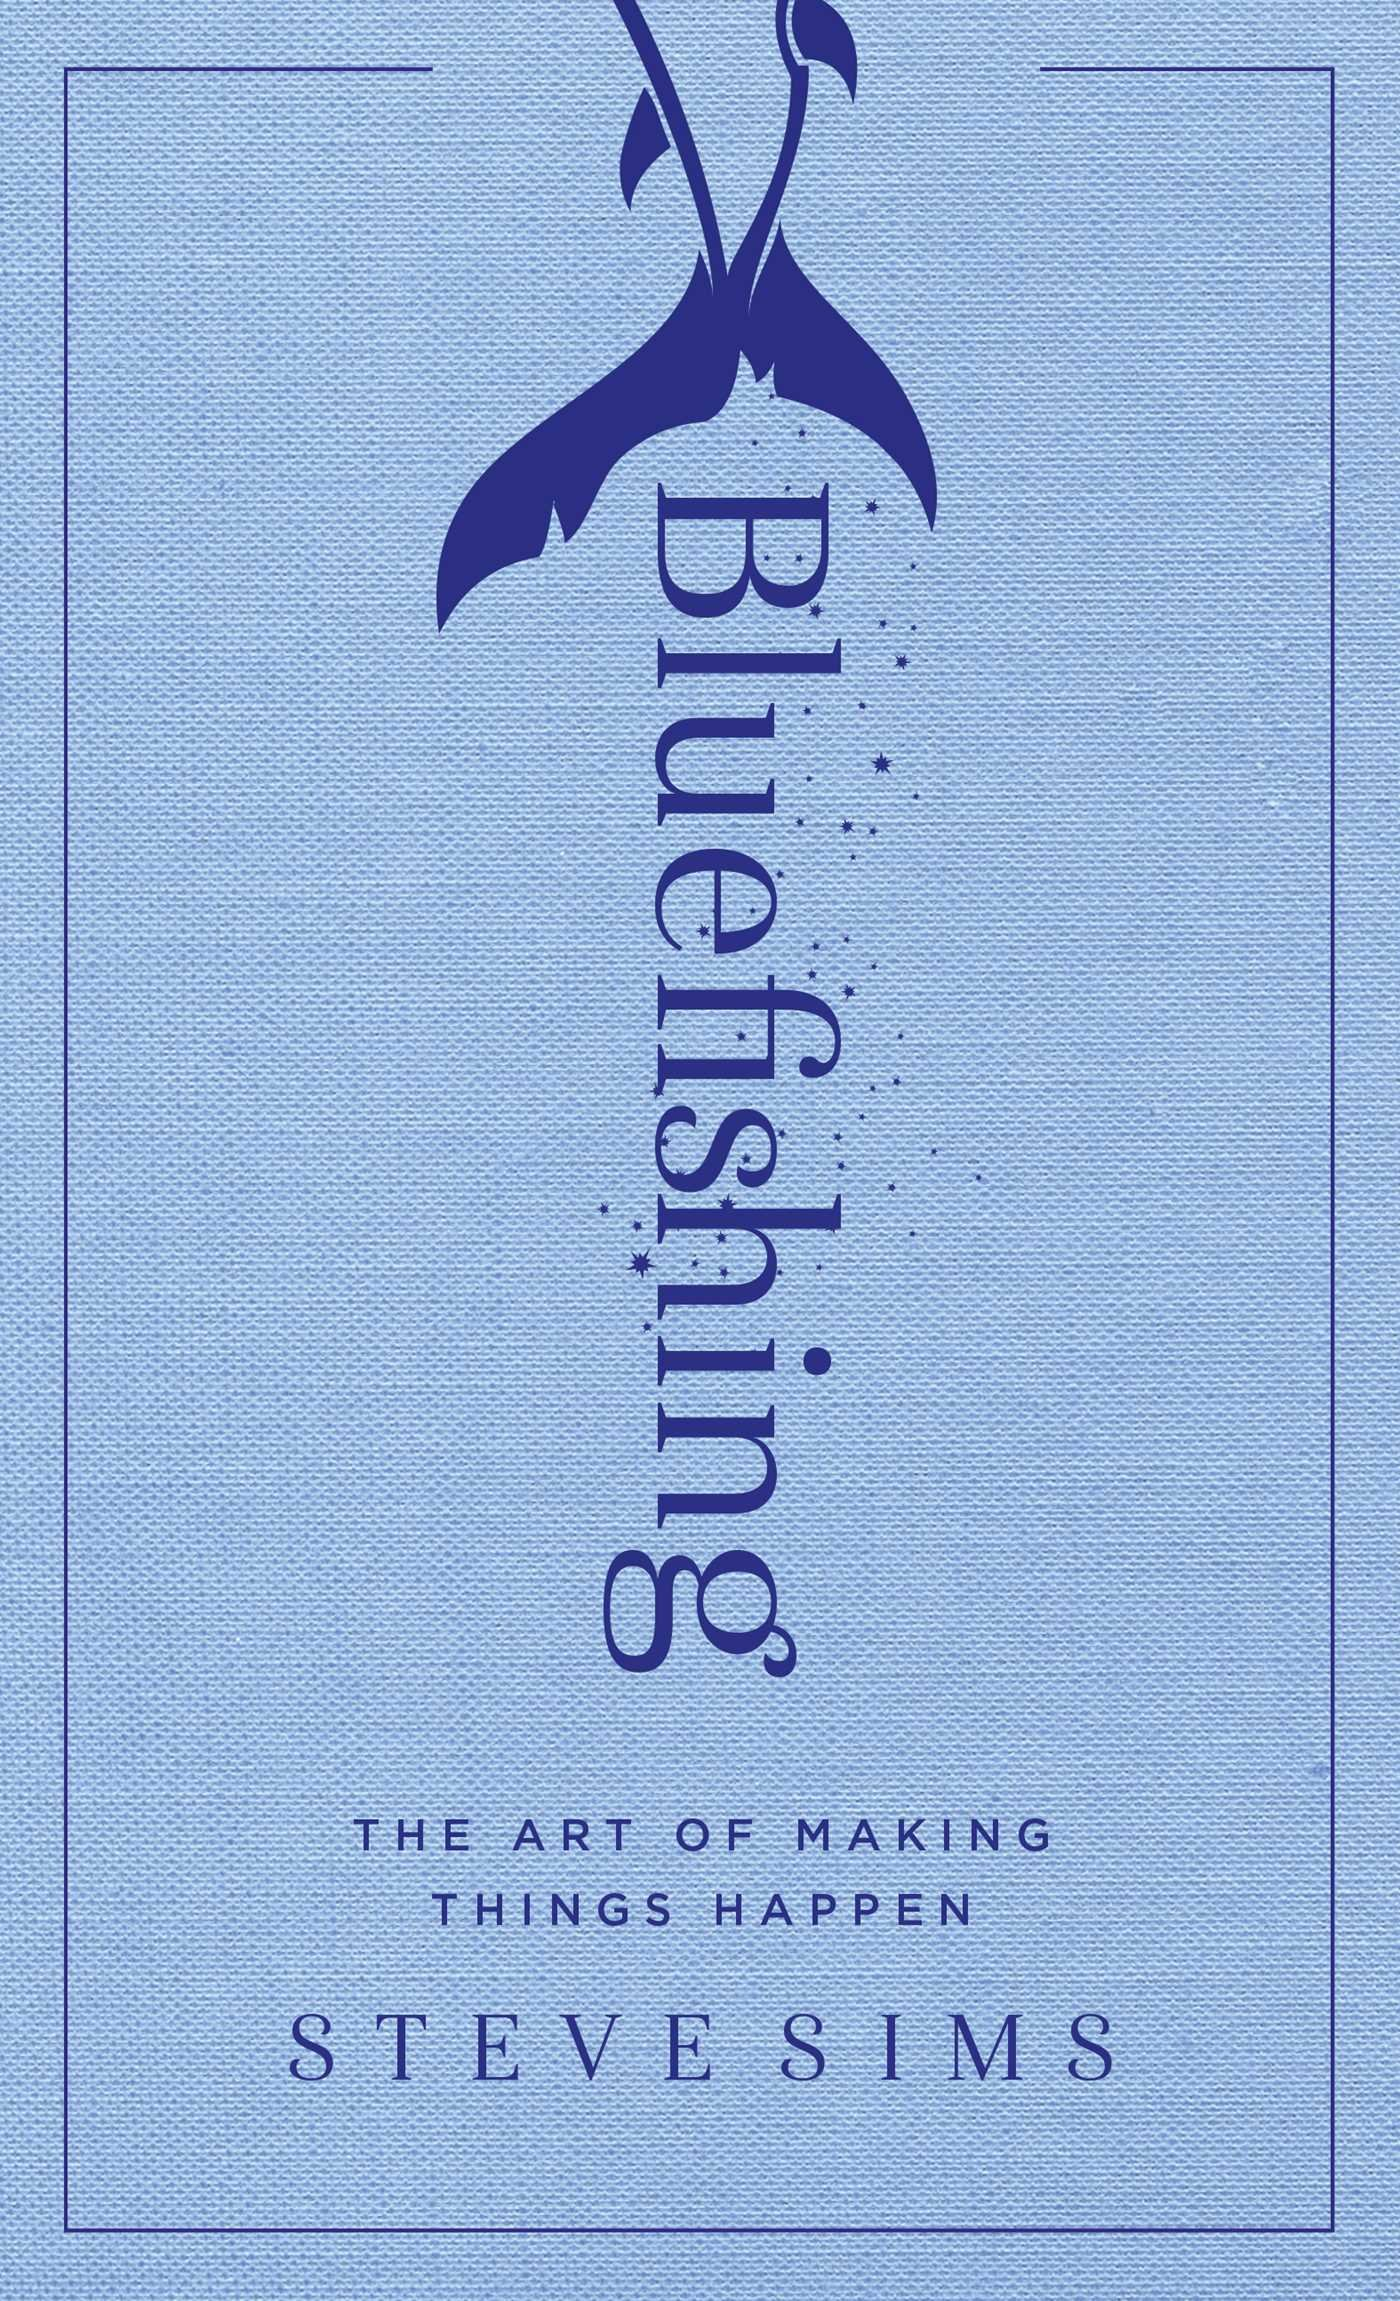 Bluefishing the art of making things happen steve sims bluefishing the art of making things happen steve sims 9781501152511 amazon books fandeluxe Choice Image